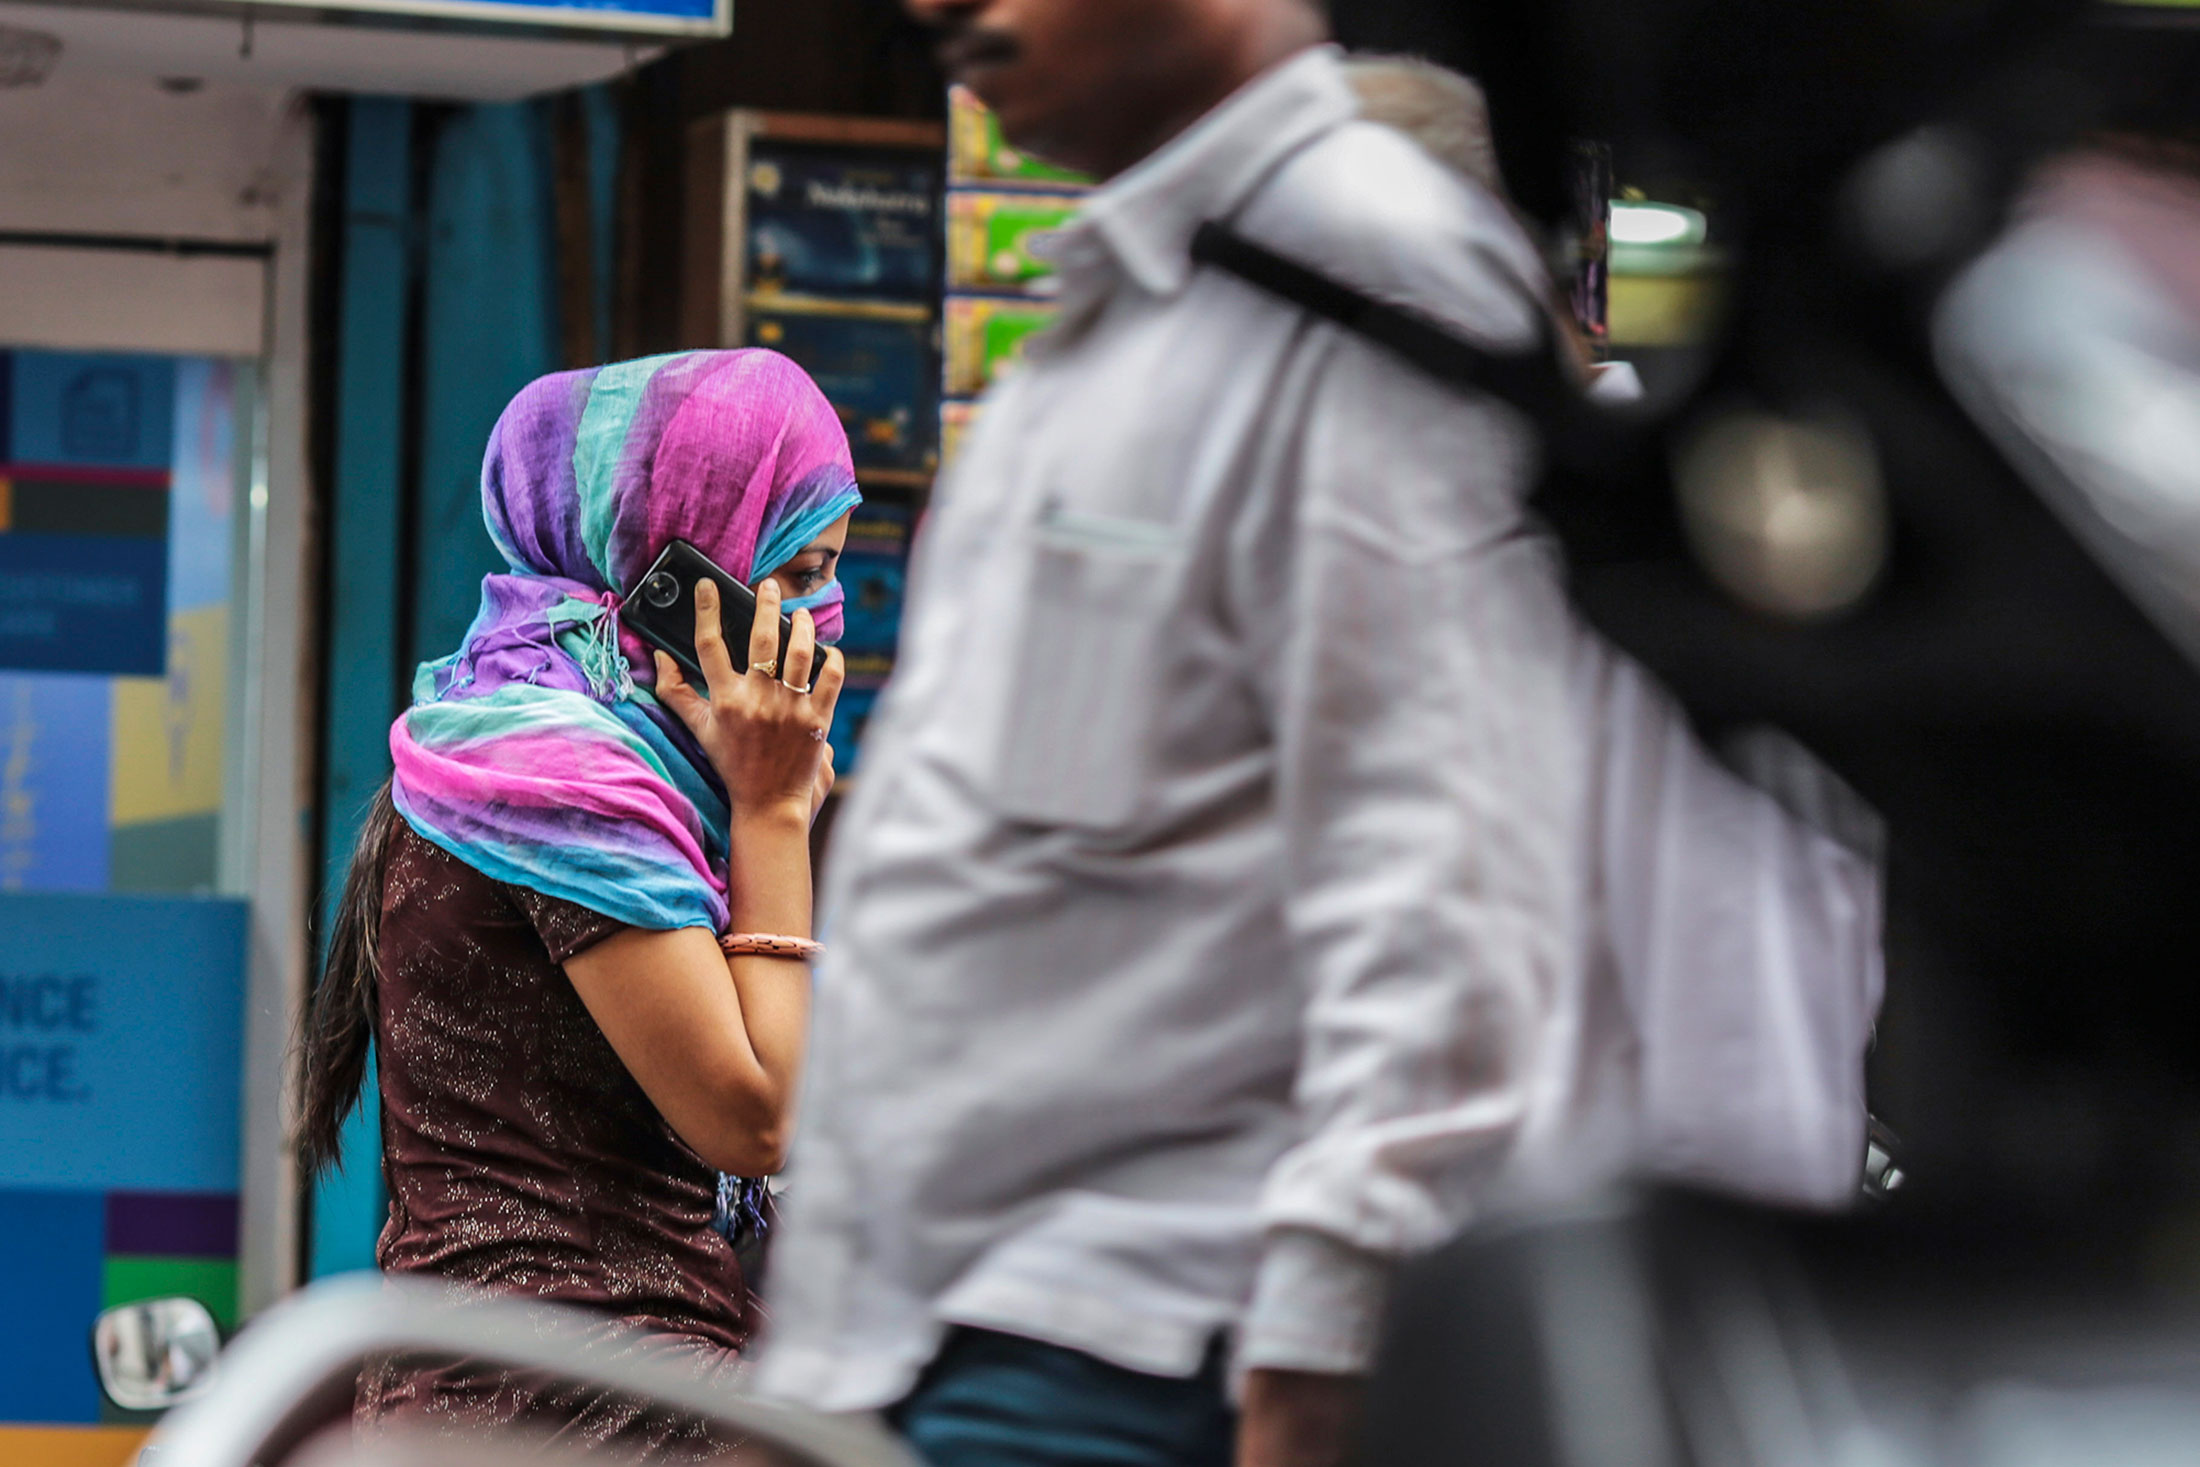 Every Phone  Sold in India Will Soon Have a Panic Button For Women's Safety - Gizmodo